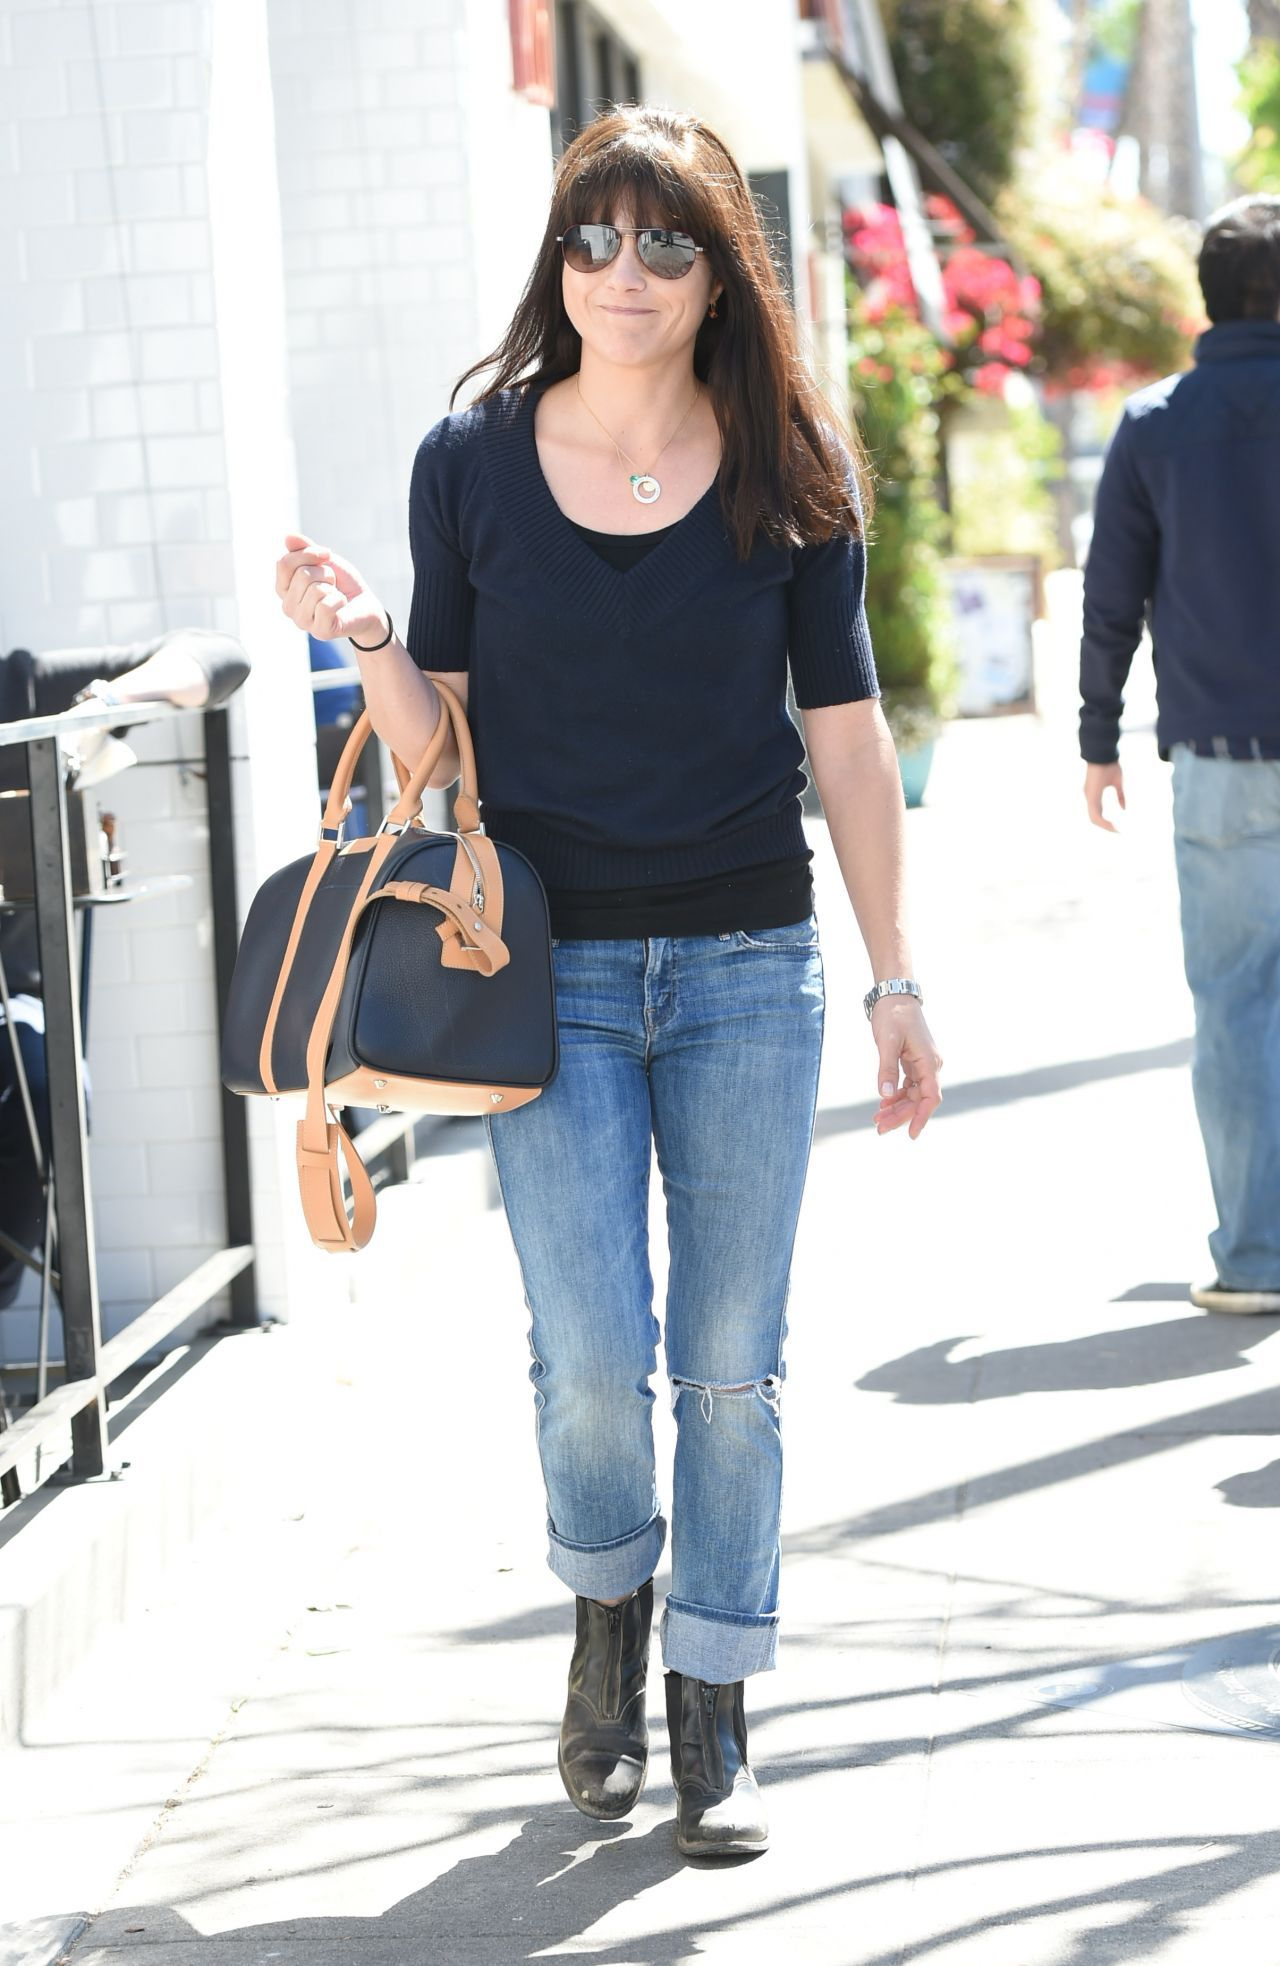 Selma blair casual style out in los angeles april 2019 new picture